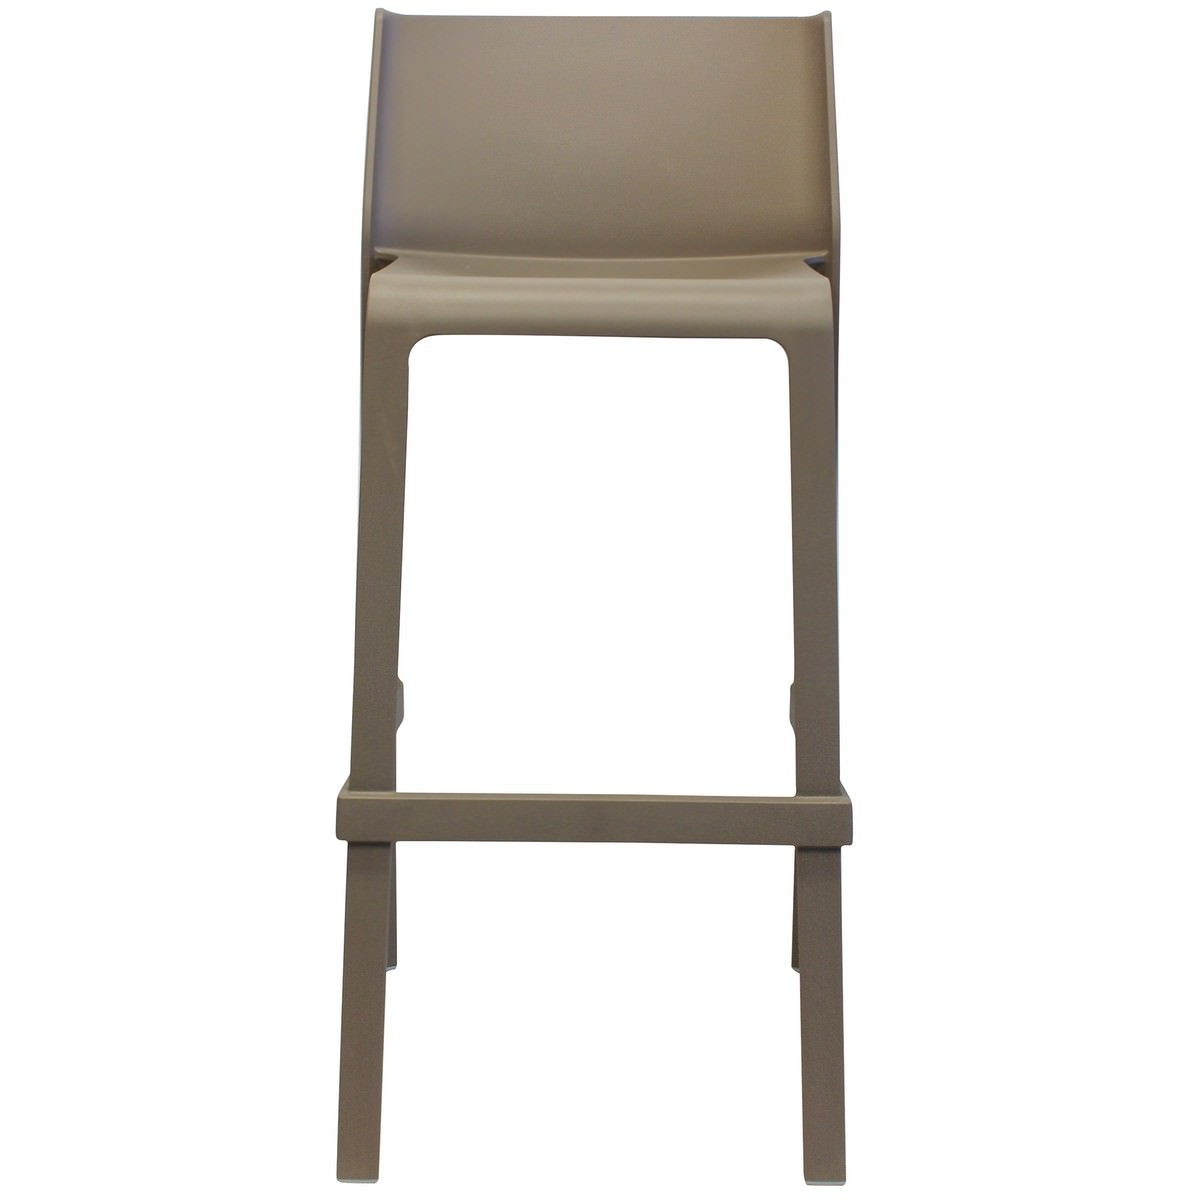 Trill Italian Made Commercial Grade Indoor / Outdoor Bar Stool, Taupe